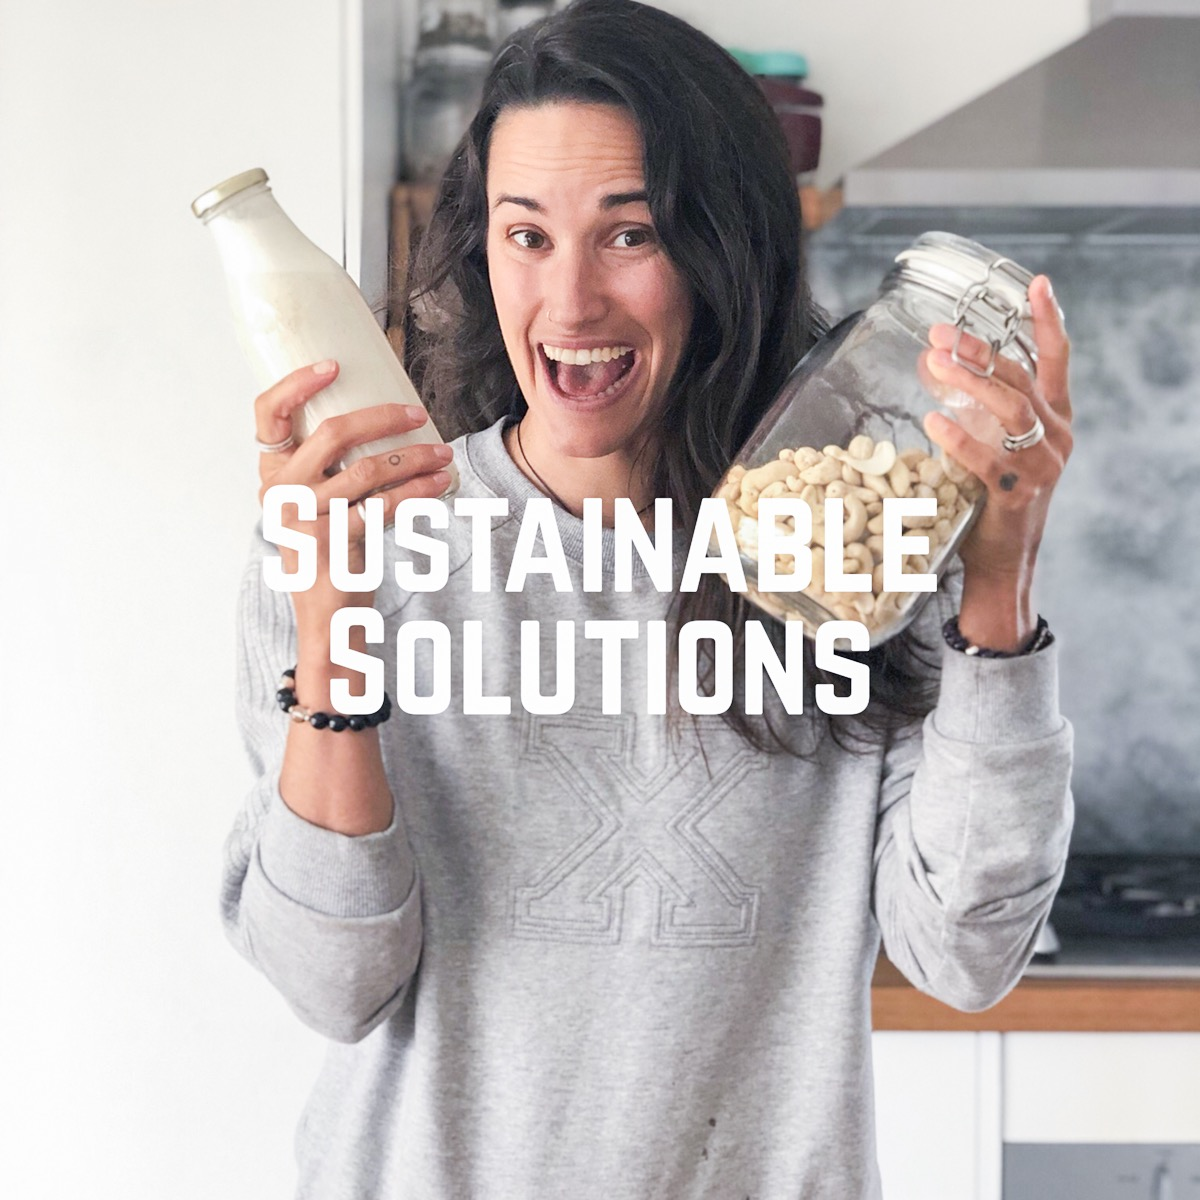 Sustainable solutions.JPG